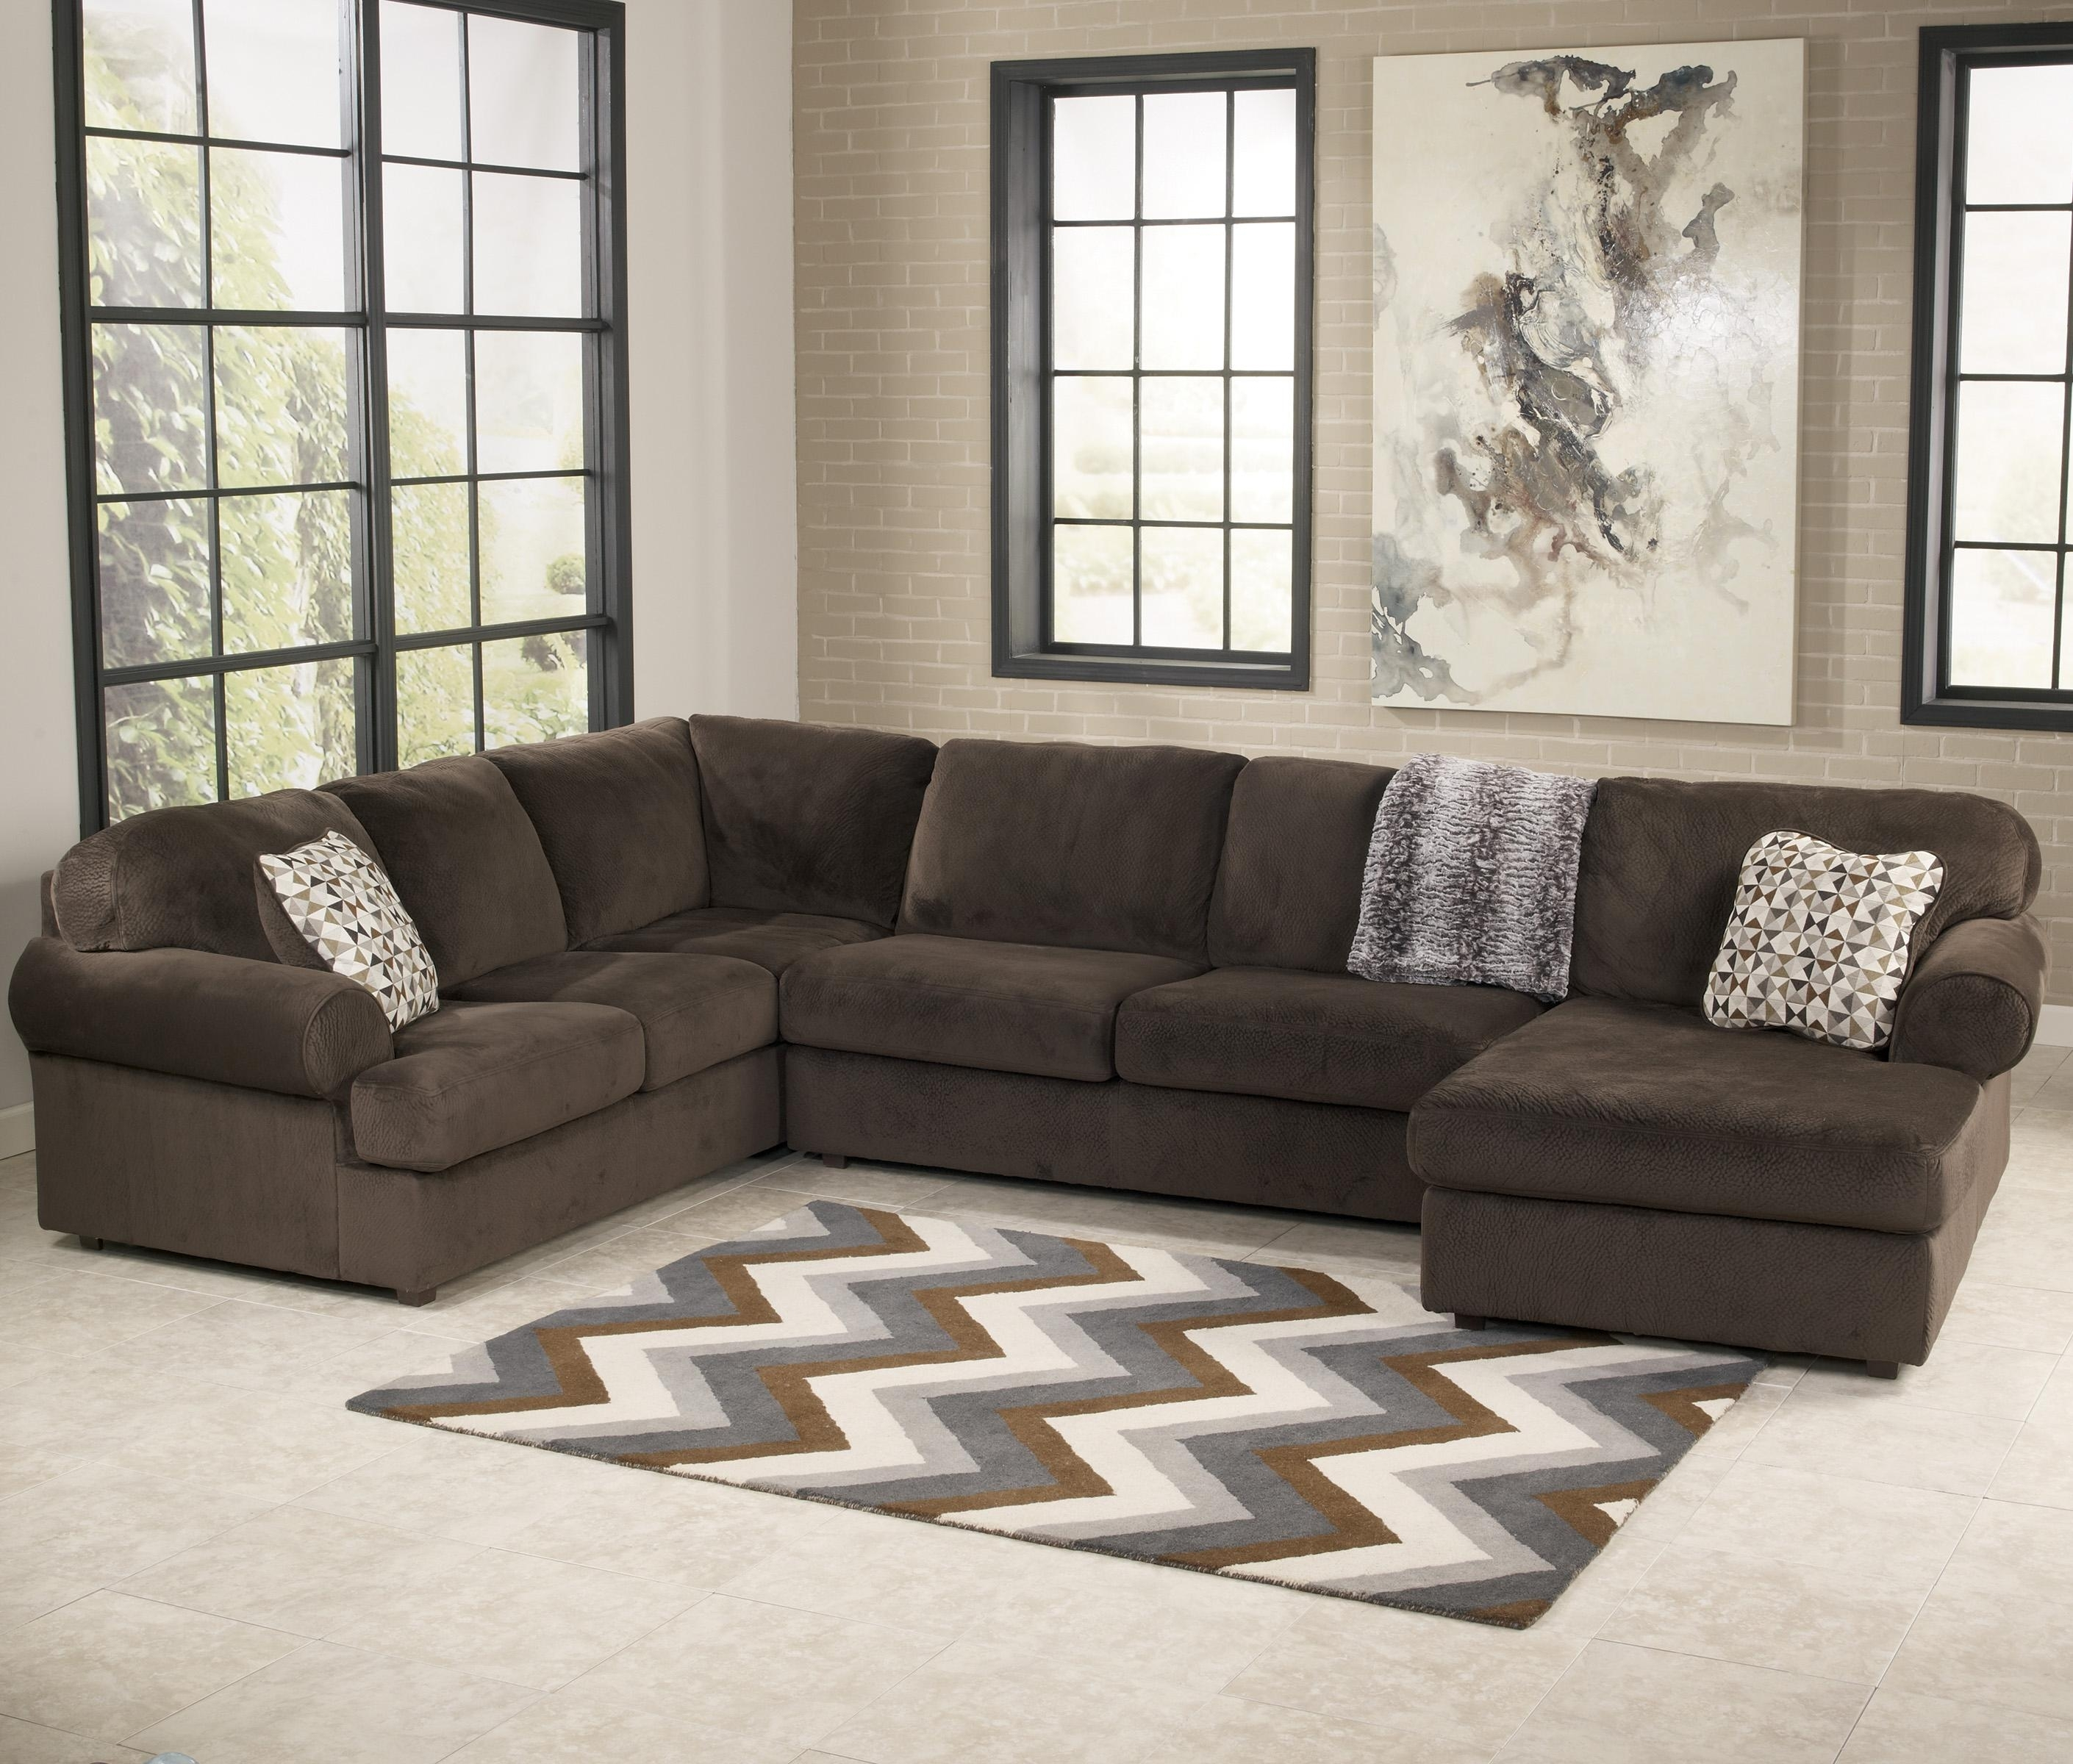 Signature Designashley Jessa Place - Chocolate Casual Sectional in Clarksville Tn Sectional Sofas (Image 7 of 10)